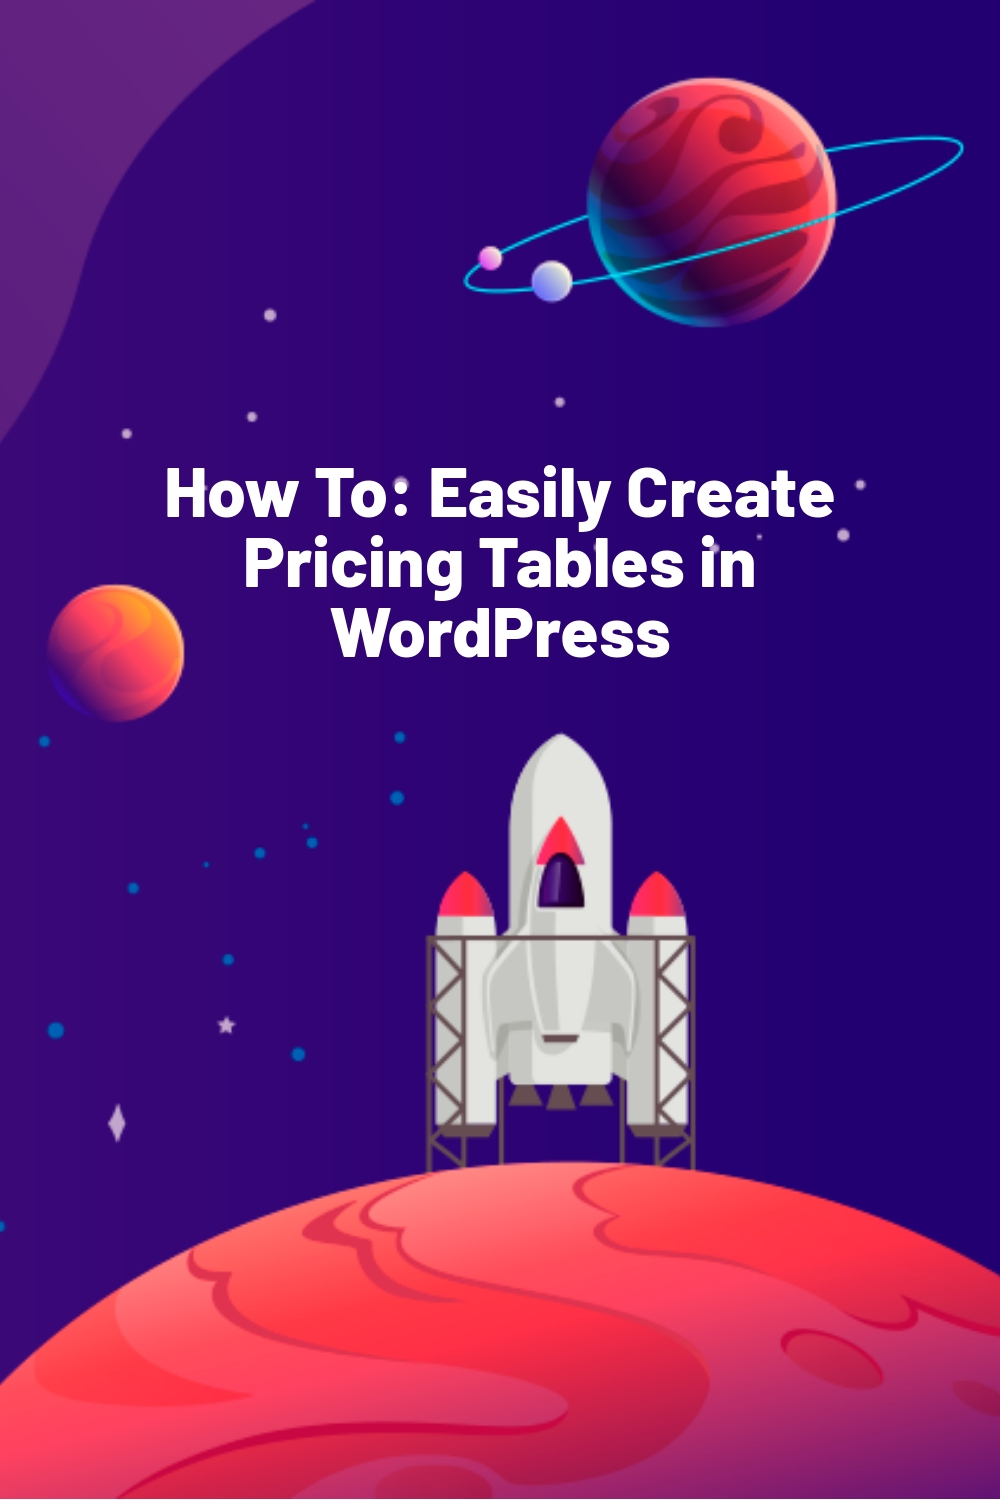 How To: Easily Create Pricing Tables in WordPress